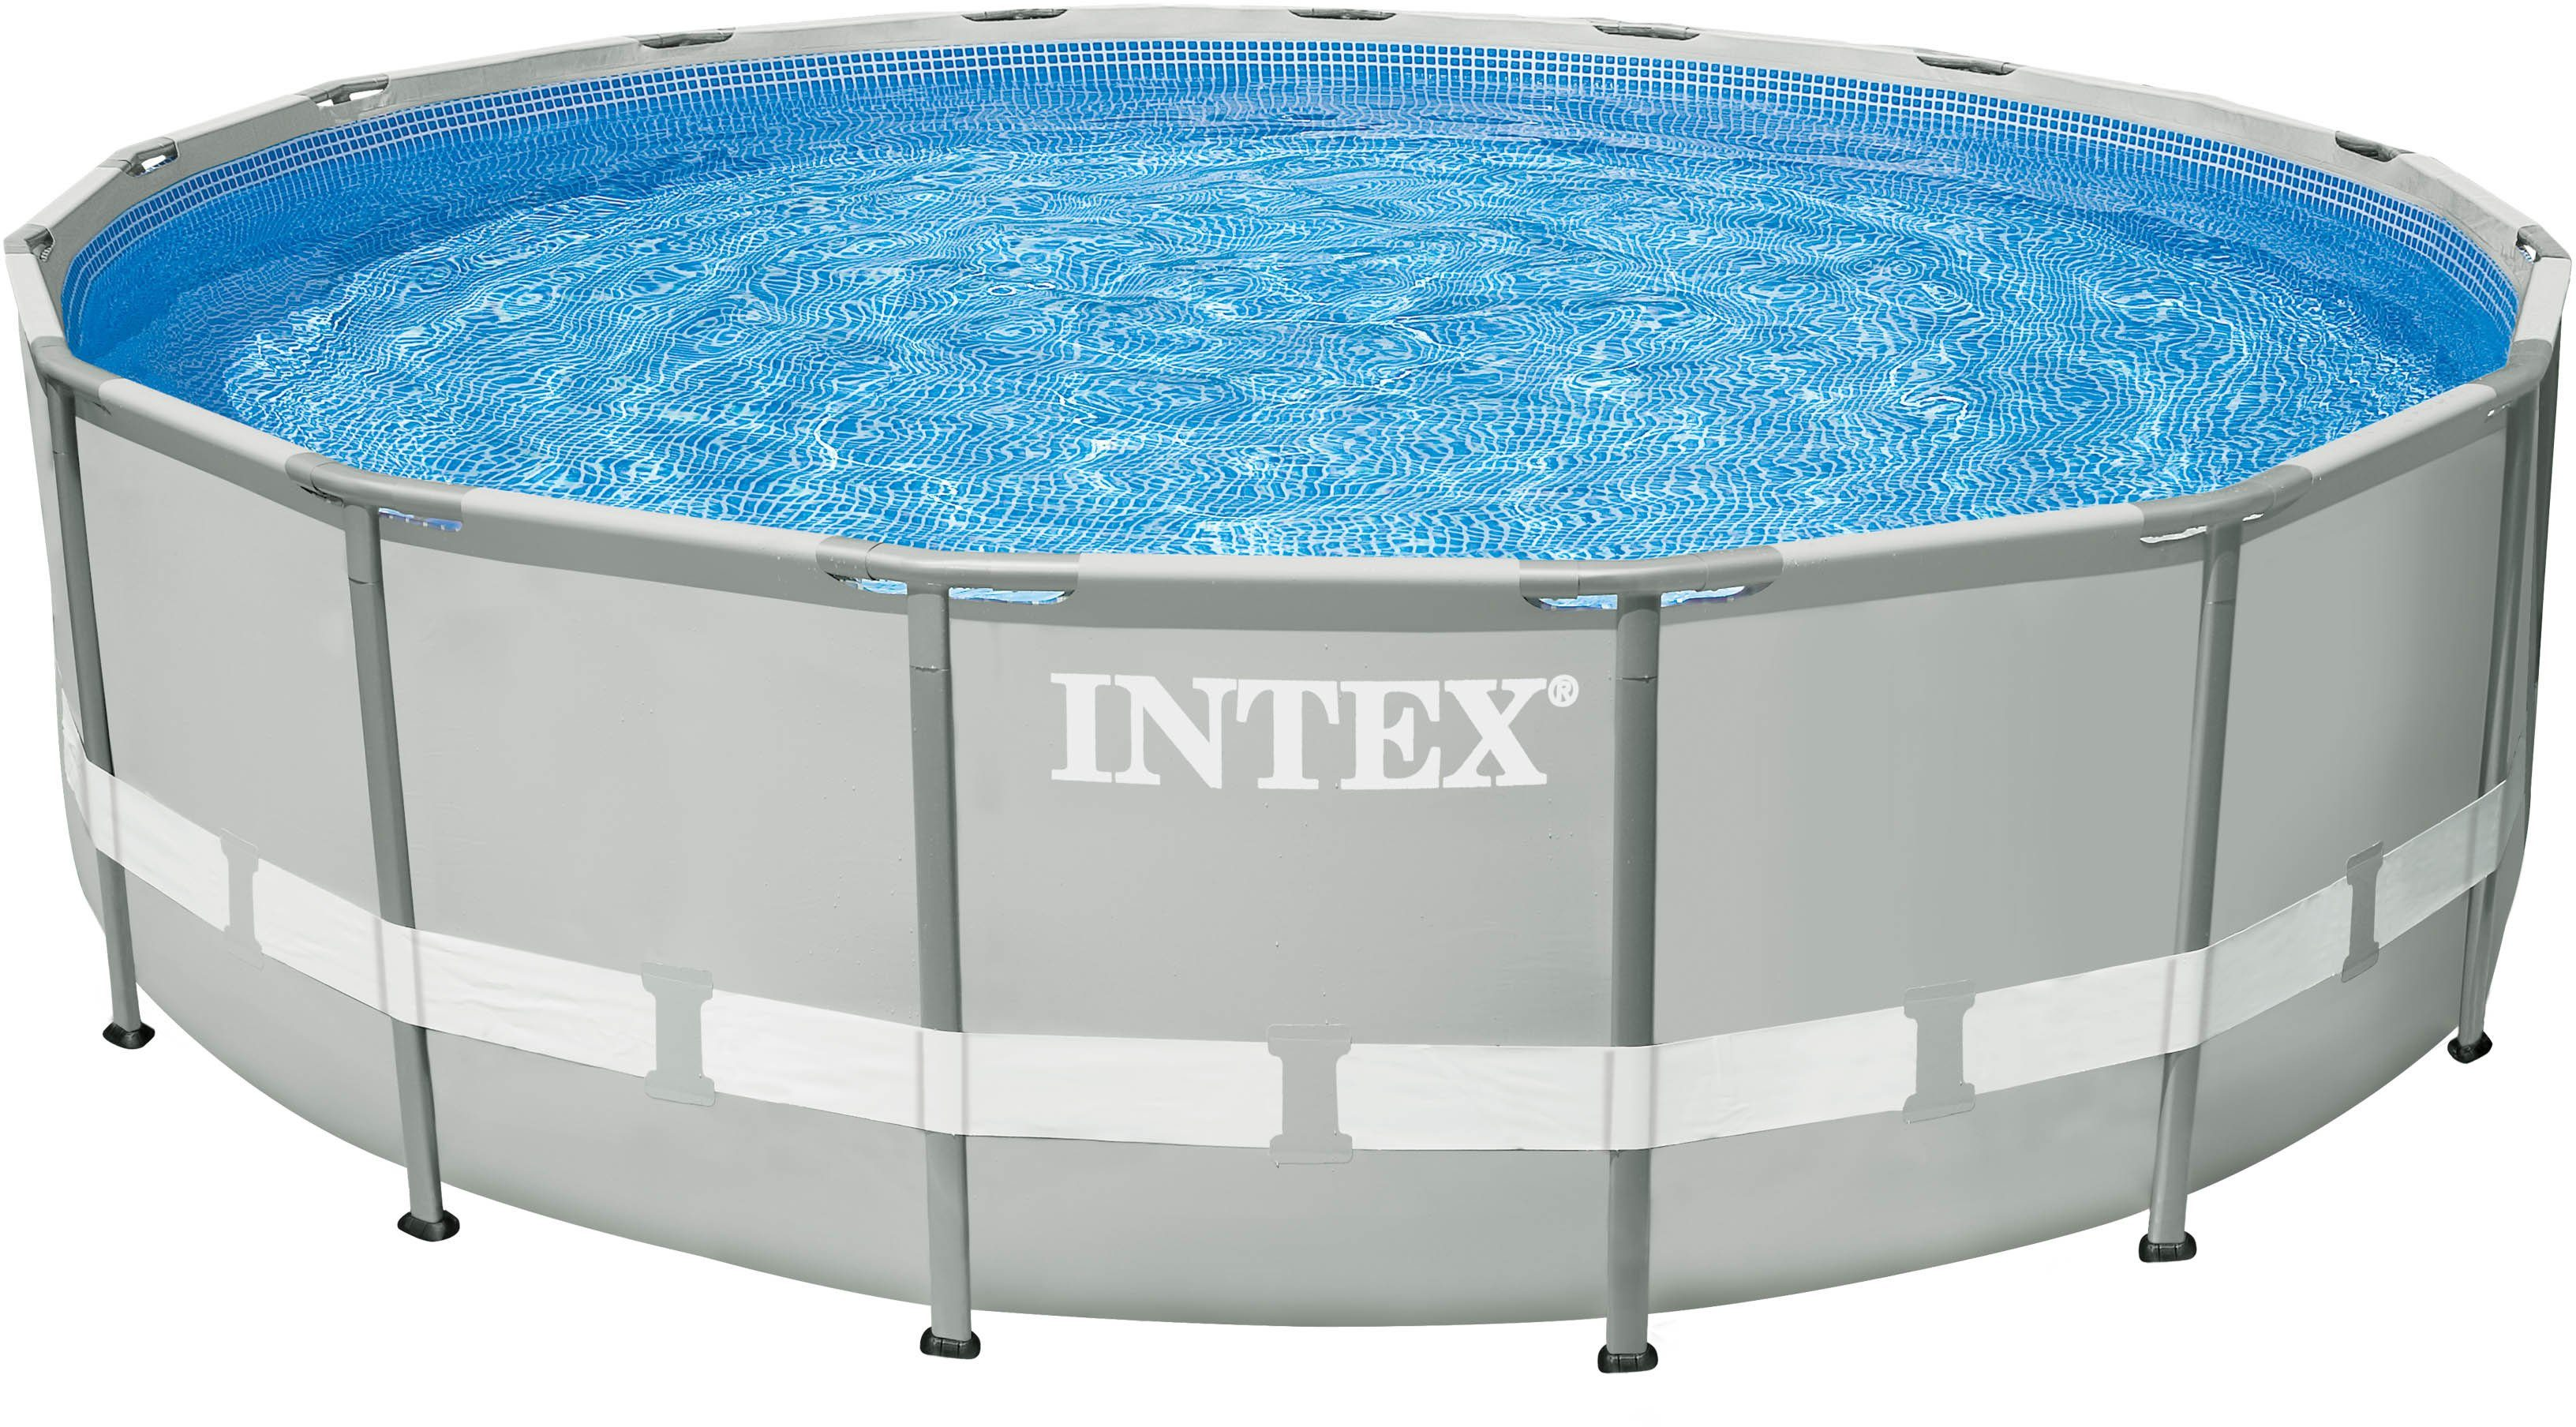 Intex Pool-Set, mit Sandfilteranlage, Ø 549 cm , »Frame Pool Ultra Komplett-Set«